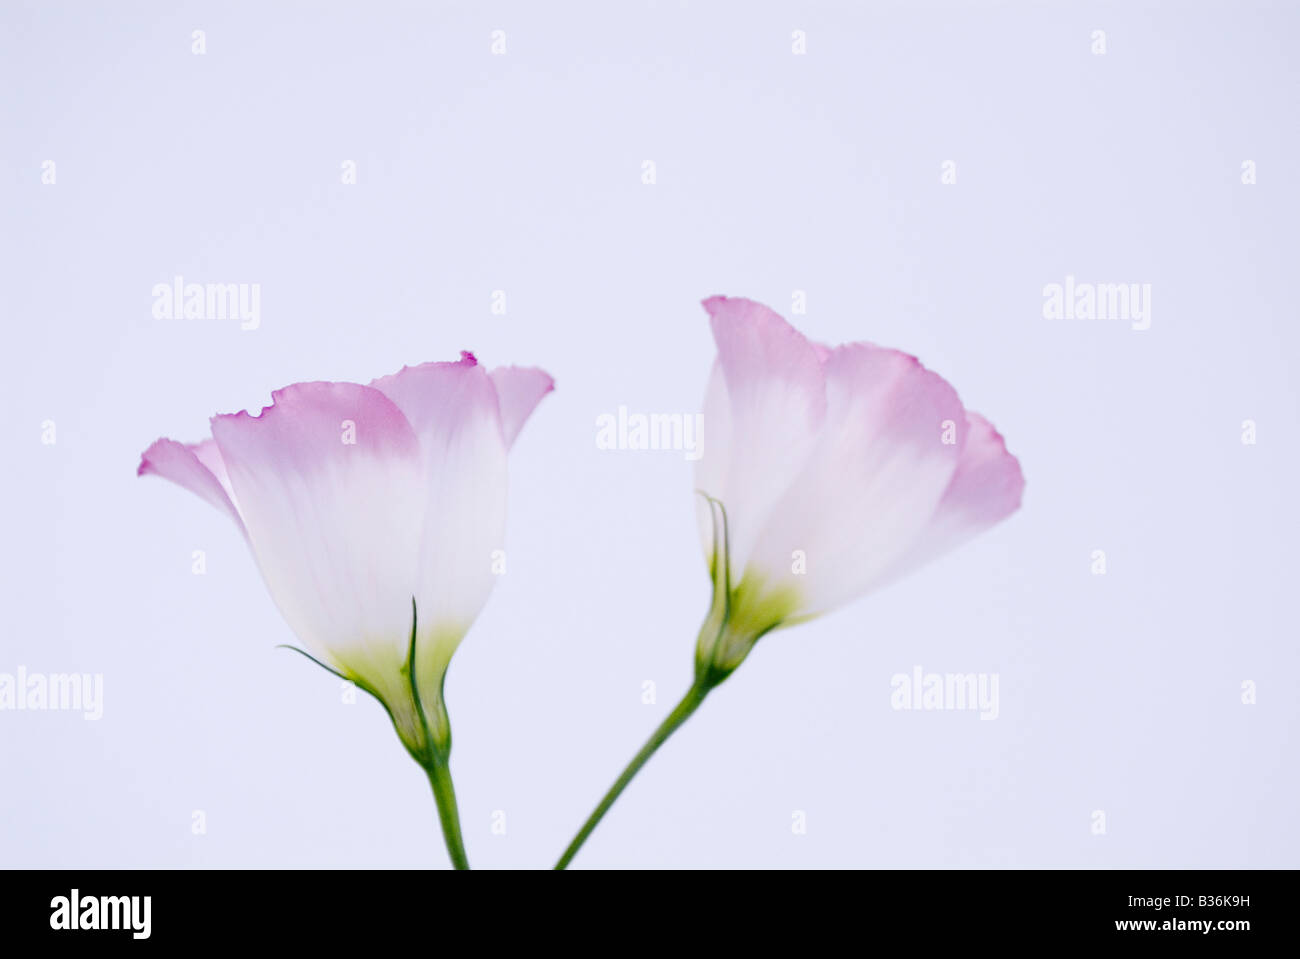 Eustoma grandiflorum - Stock Image